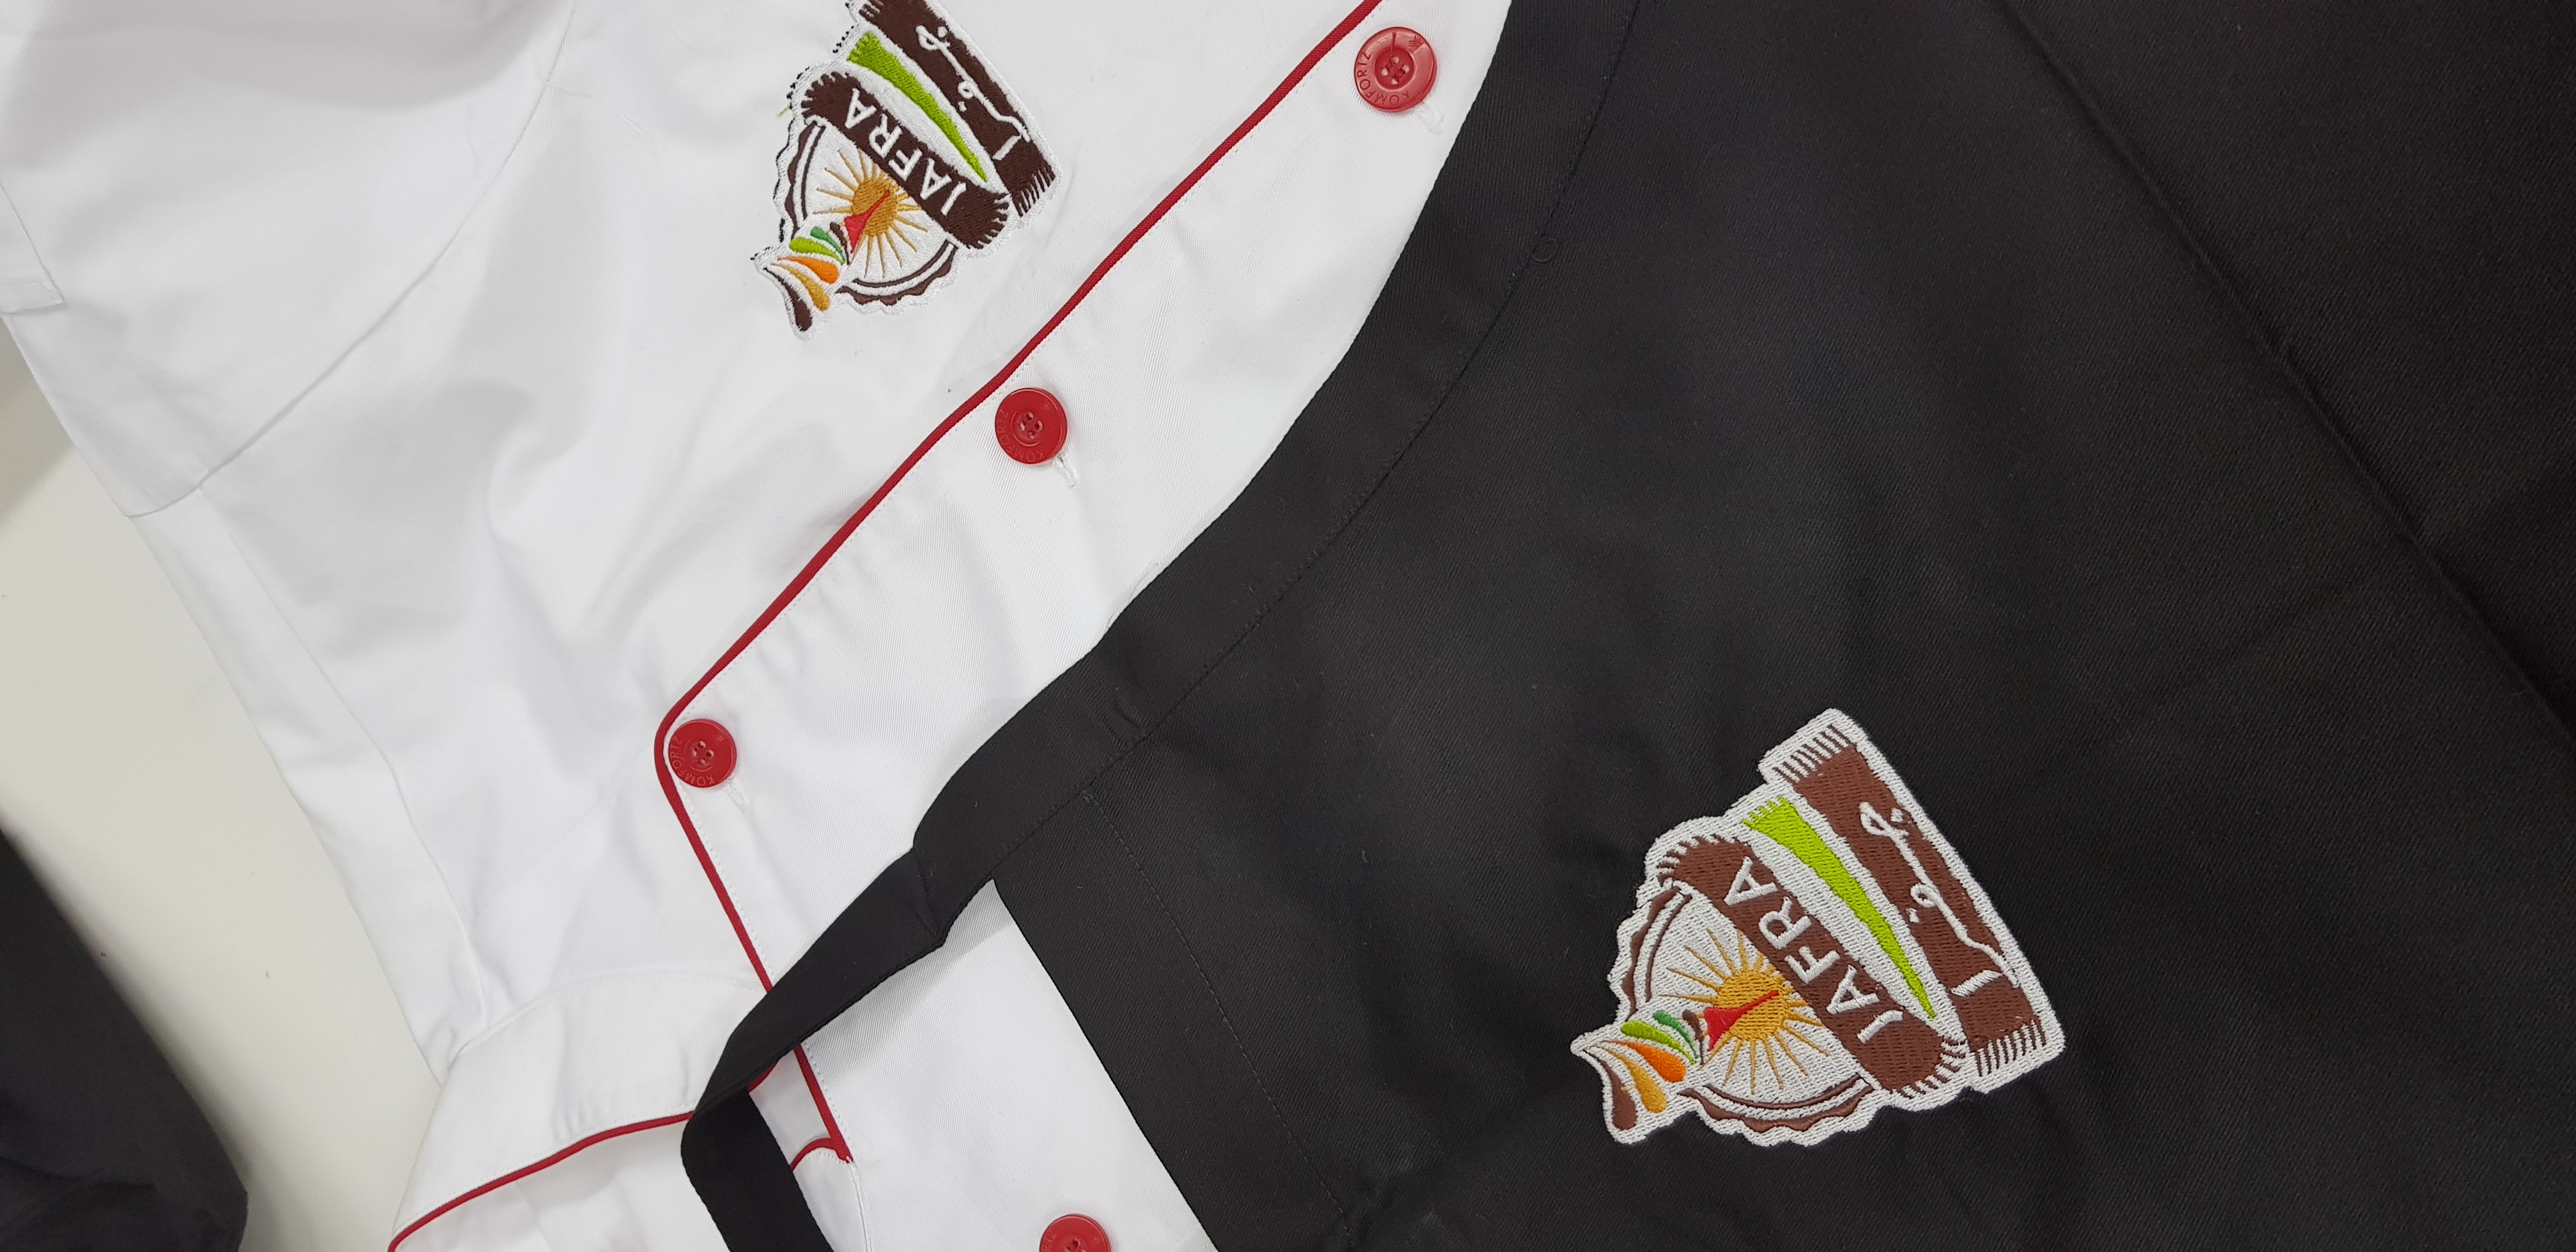 Chef coat & apron